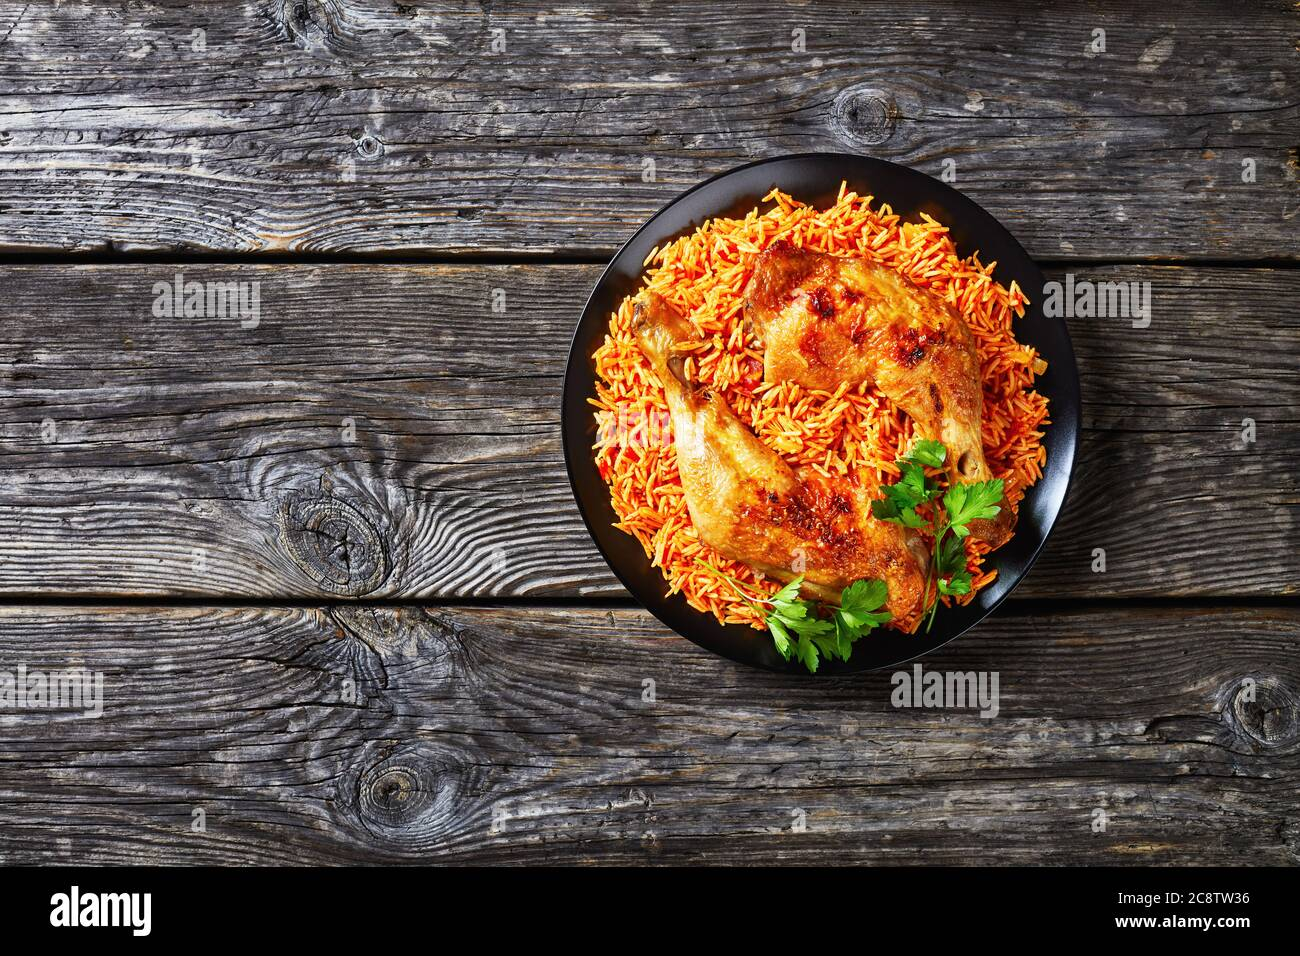 South Indian Tomato Rice Cooked With Sauteed Tomatoes Onion Red Chili Powder Cinnamon Turmeric With Oven Baked Chicken Quarters On A Black Plate Stock Photo Alamy